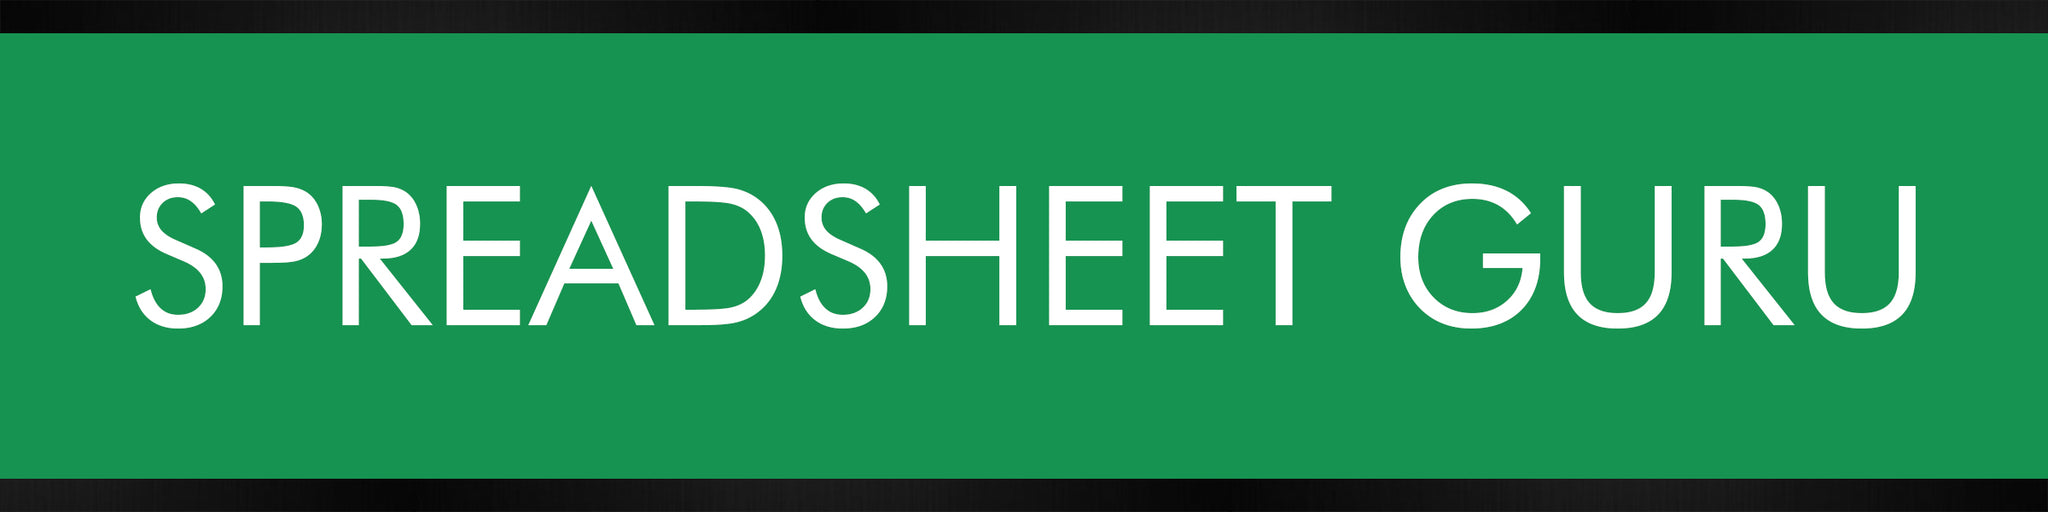 Spreadsheet Guru Desk Plate